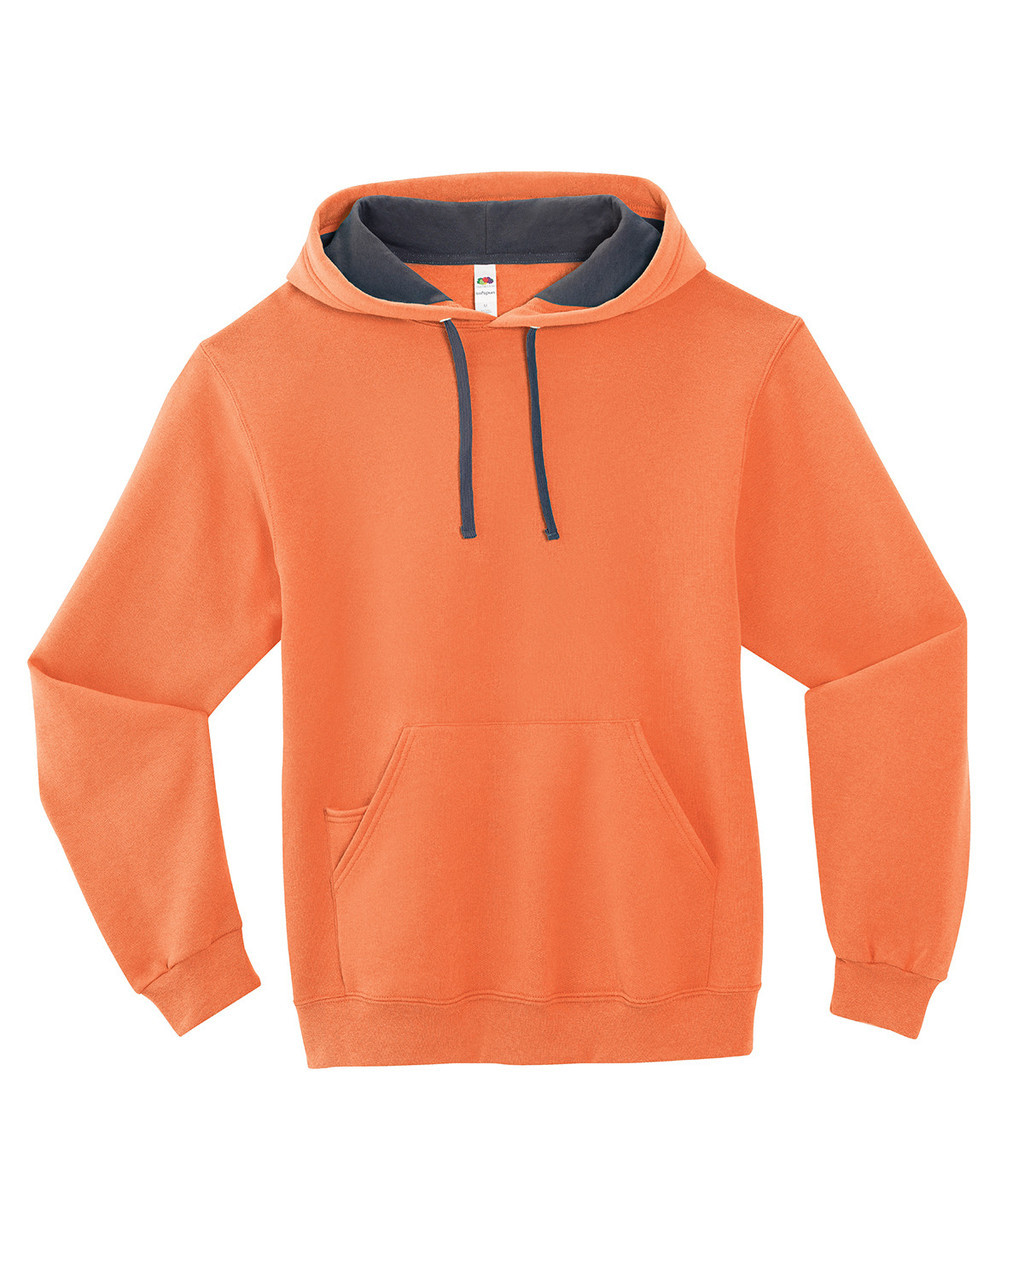 Orange Sherbert - SF76R Fruit of the Loom Softspun Hooded Sweatshirt | Blankclothing.ca